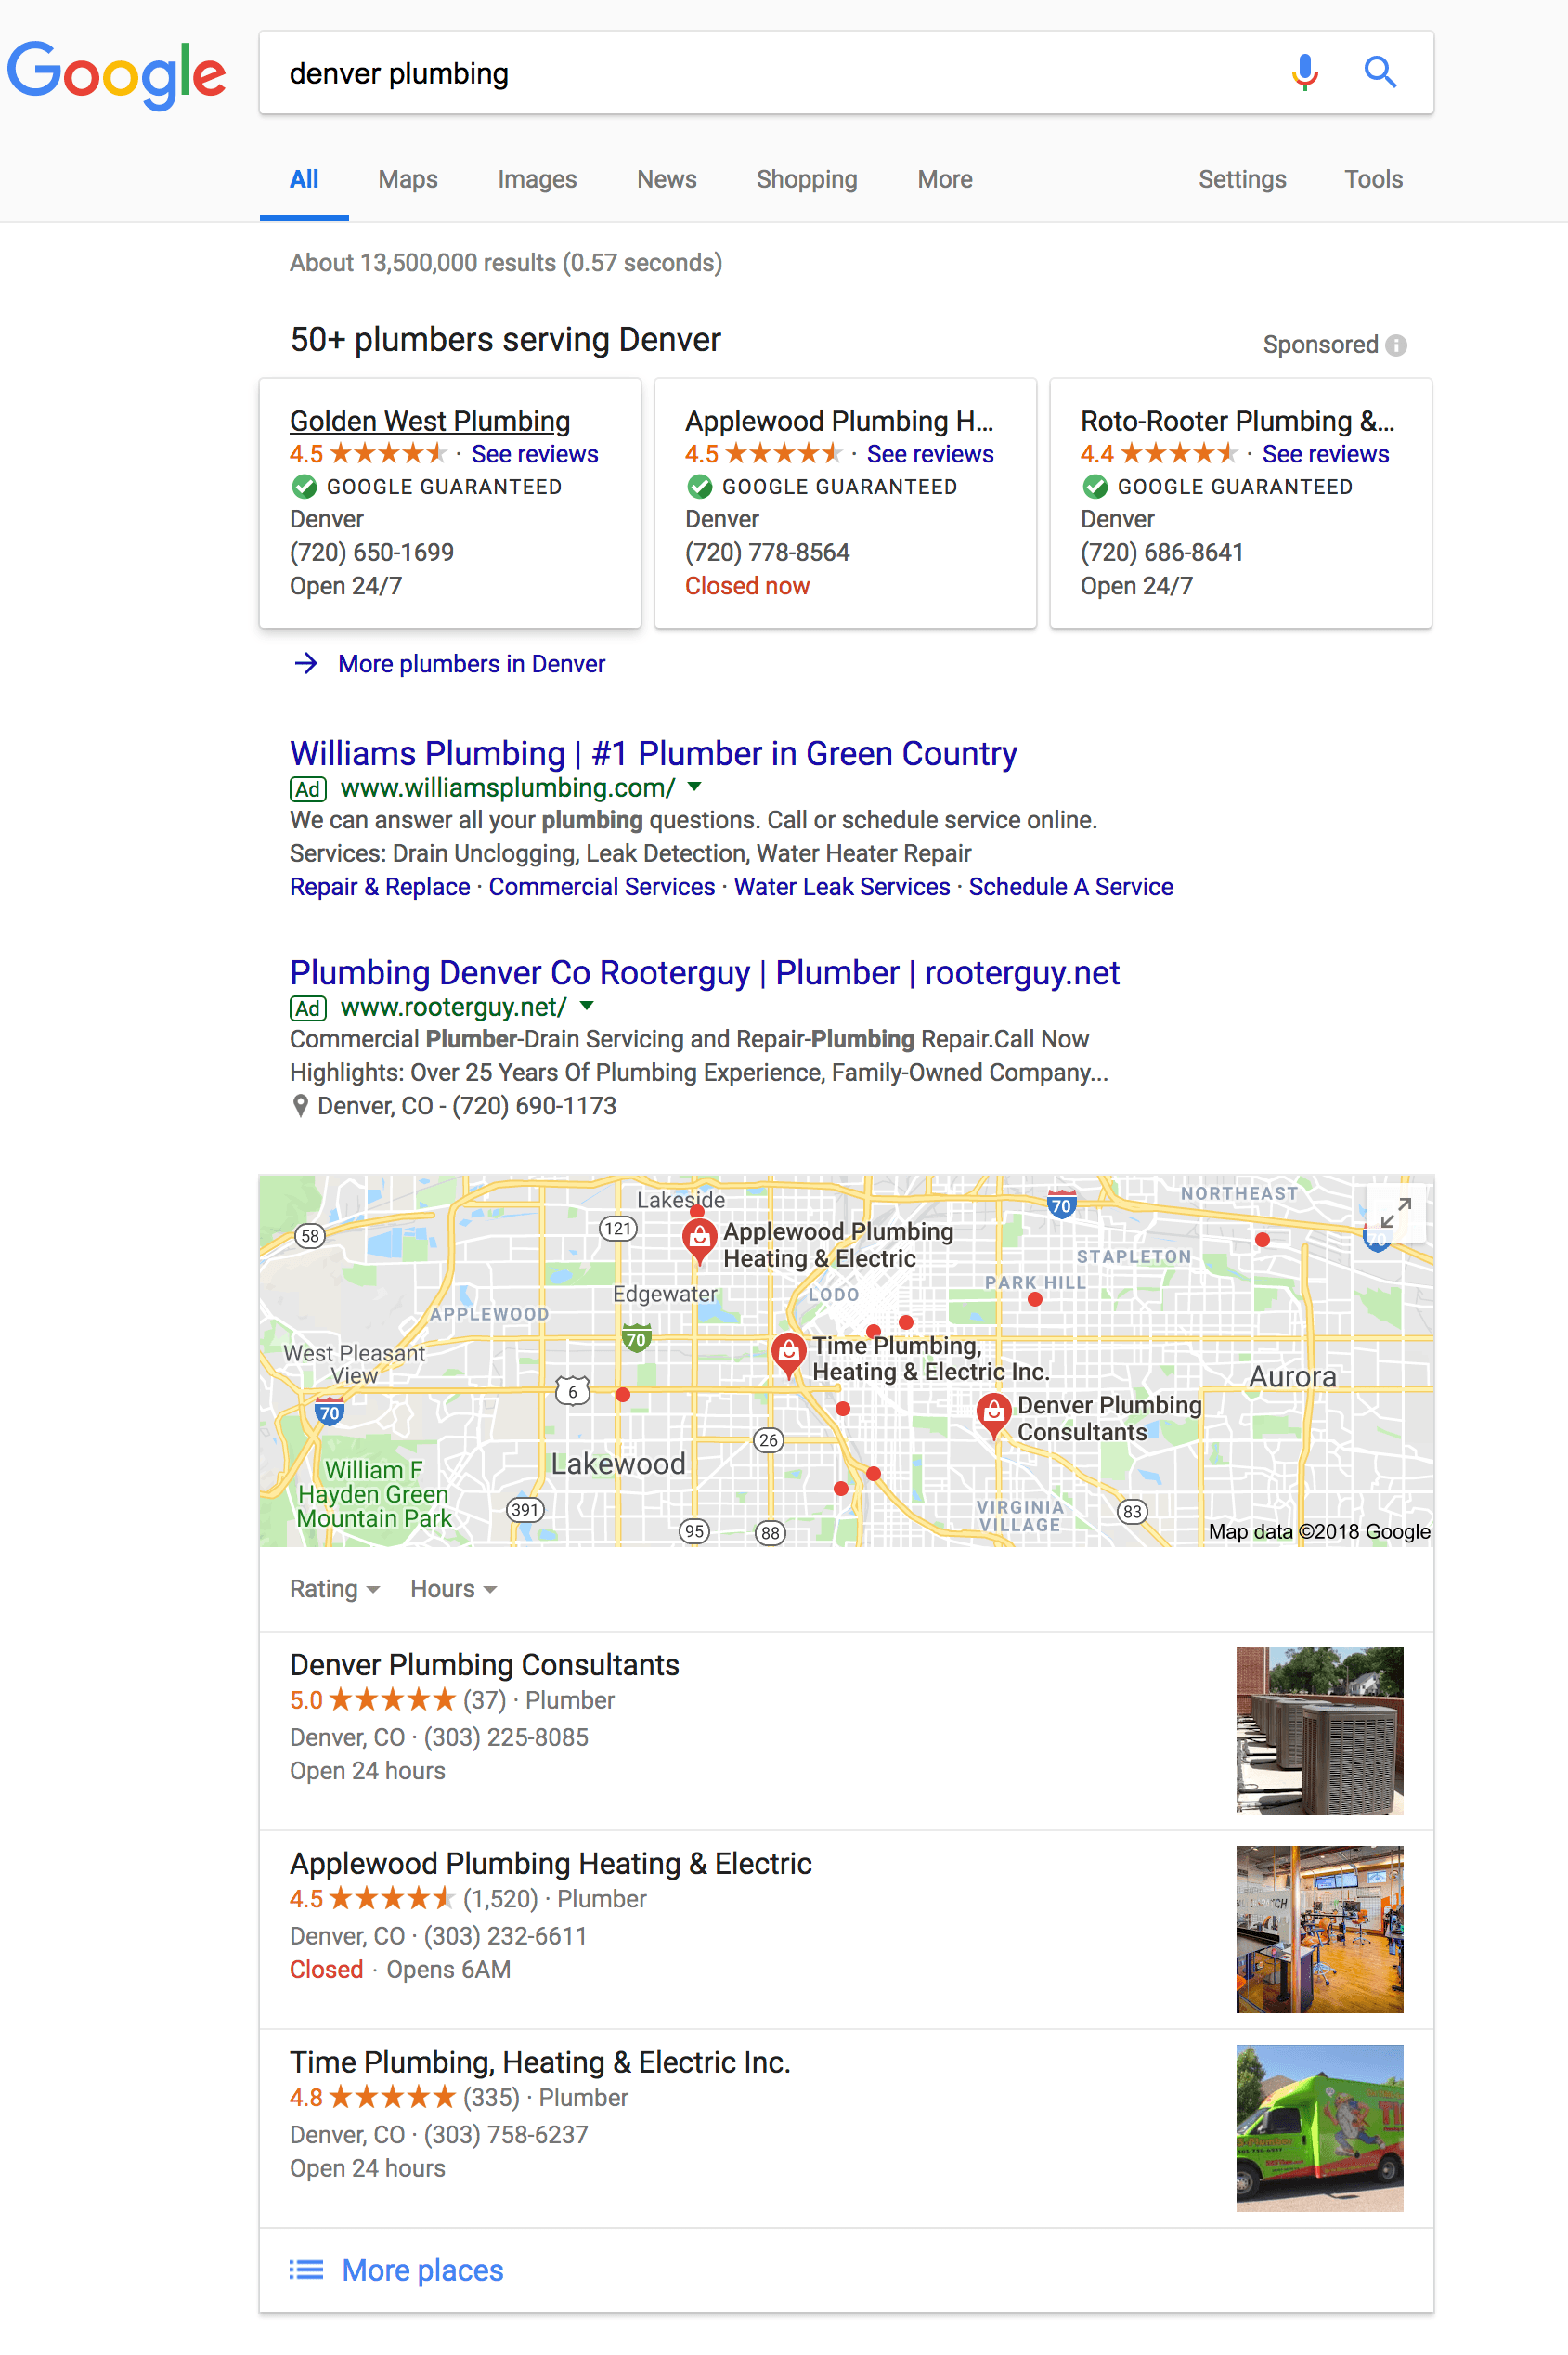 How Plumbers Land at the Top of Google Search